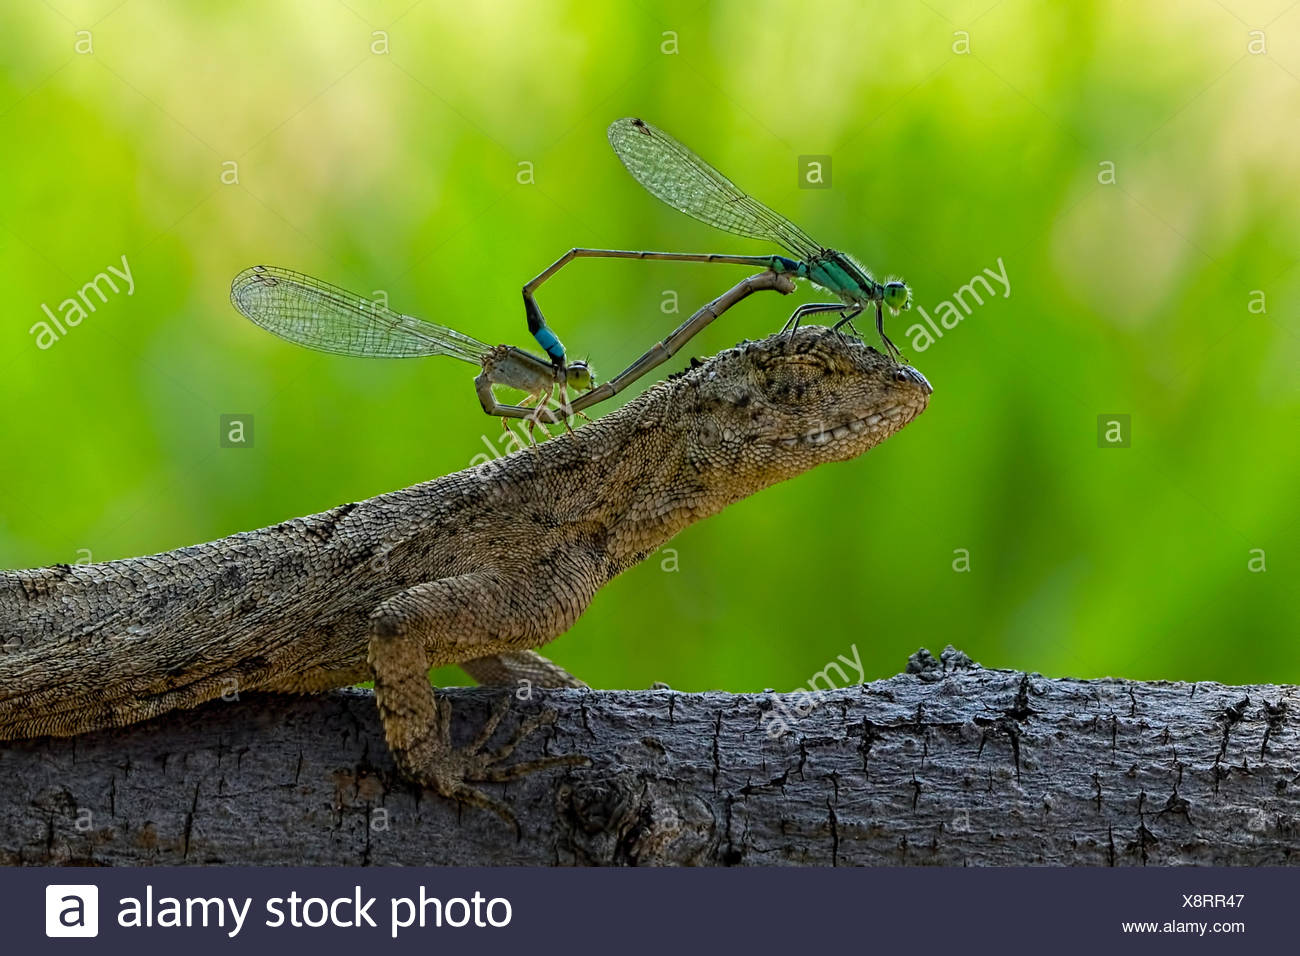 Two mating damselflies sitting on the head of a lizard - Stock Image